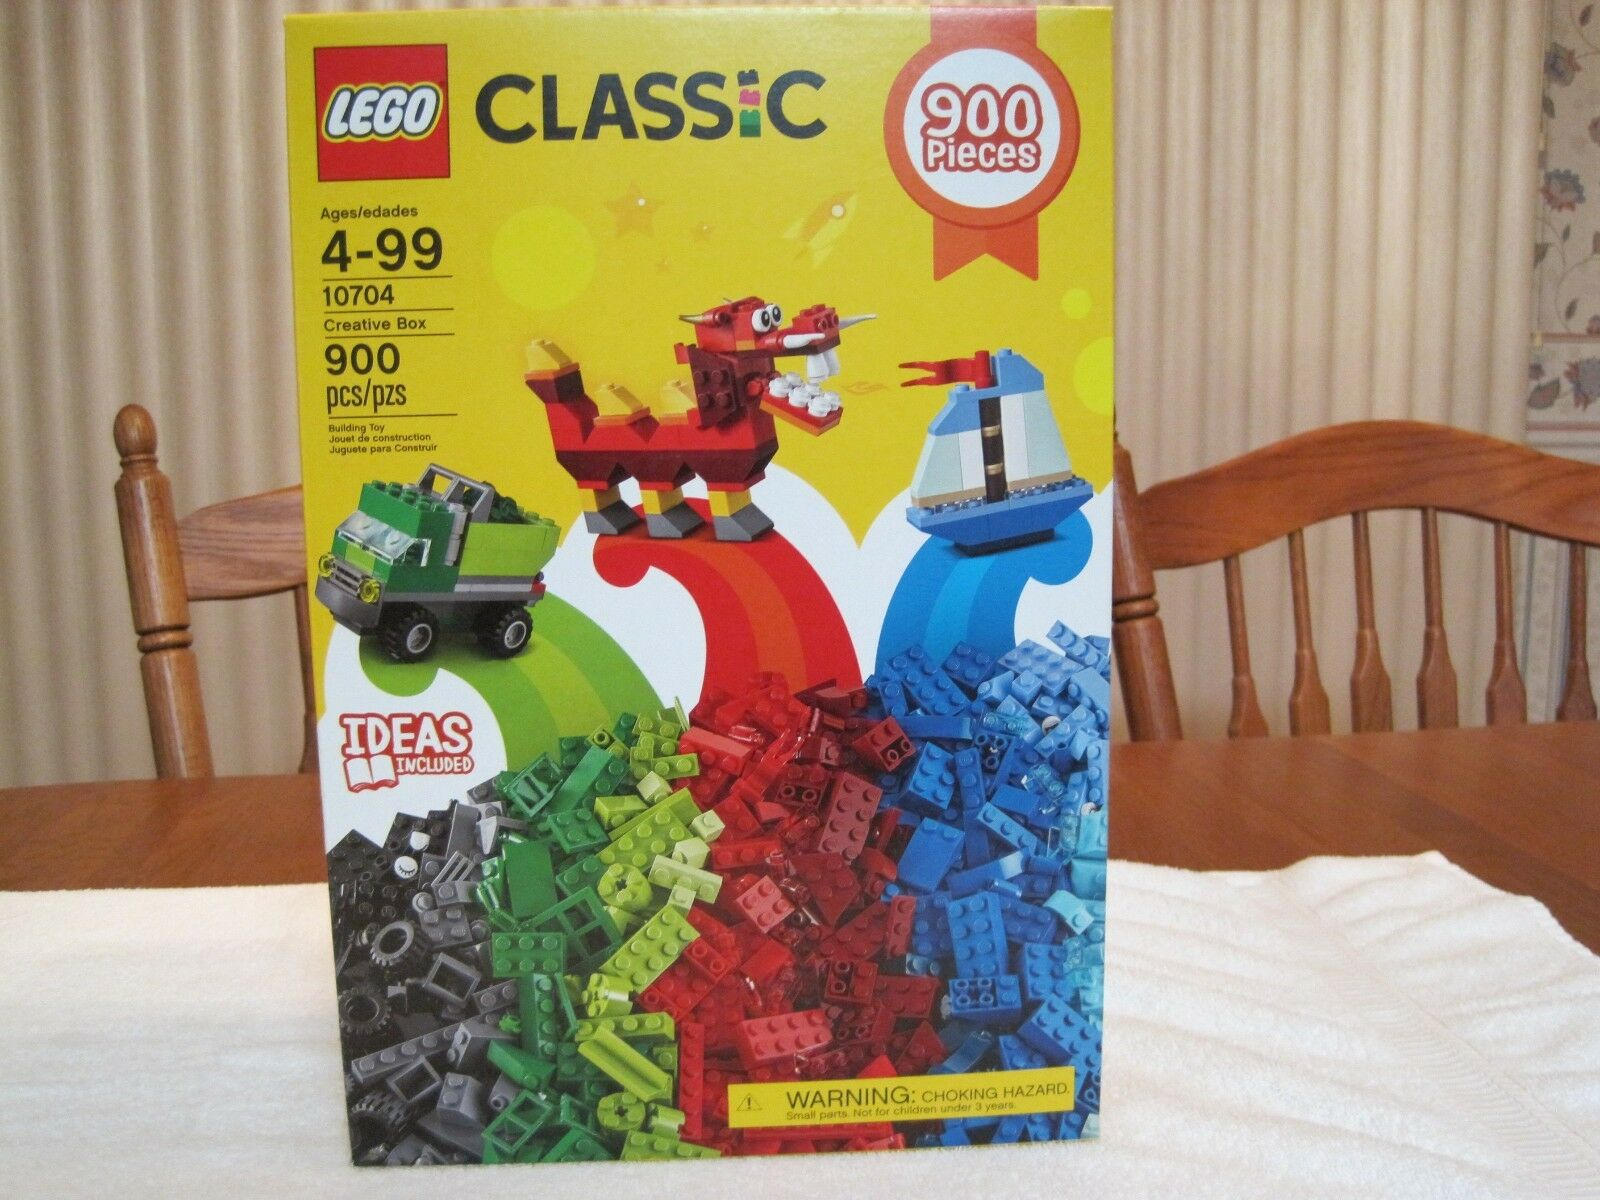 2017 LEGO CLASSIC CREATIVE BOX 900 PIECES -- NEW -- FACTORY SEALED